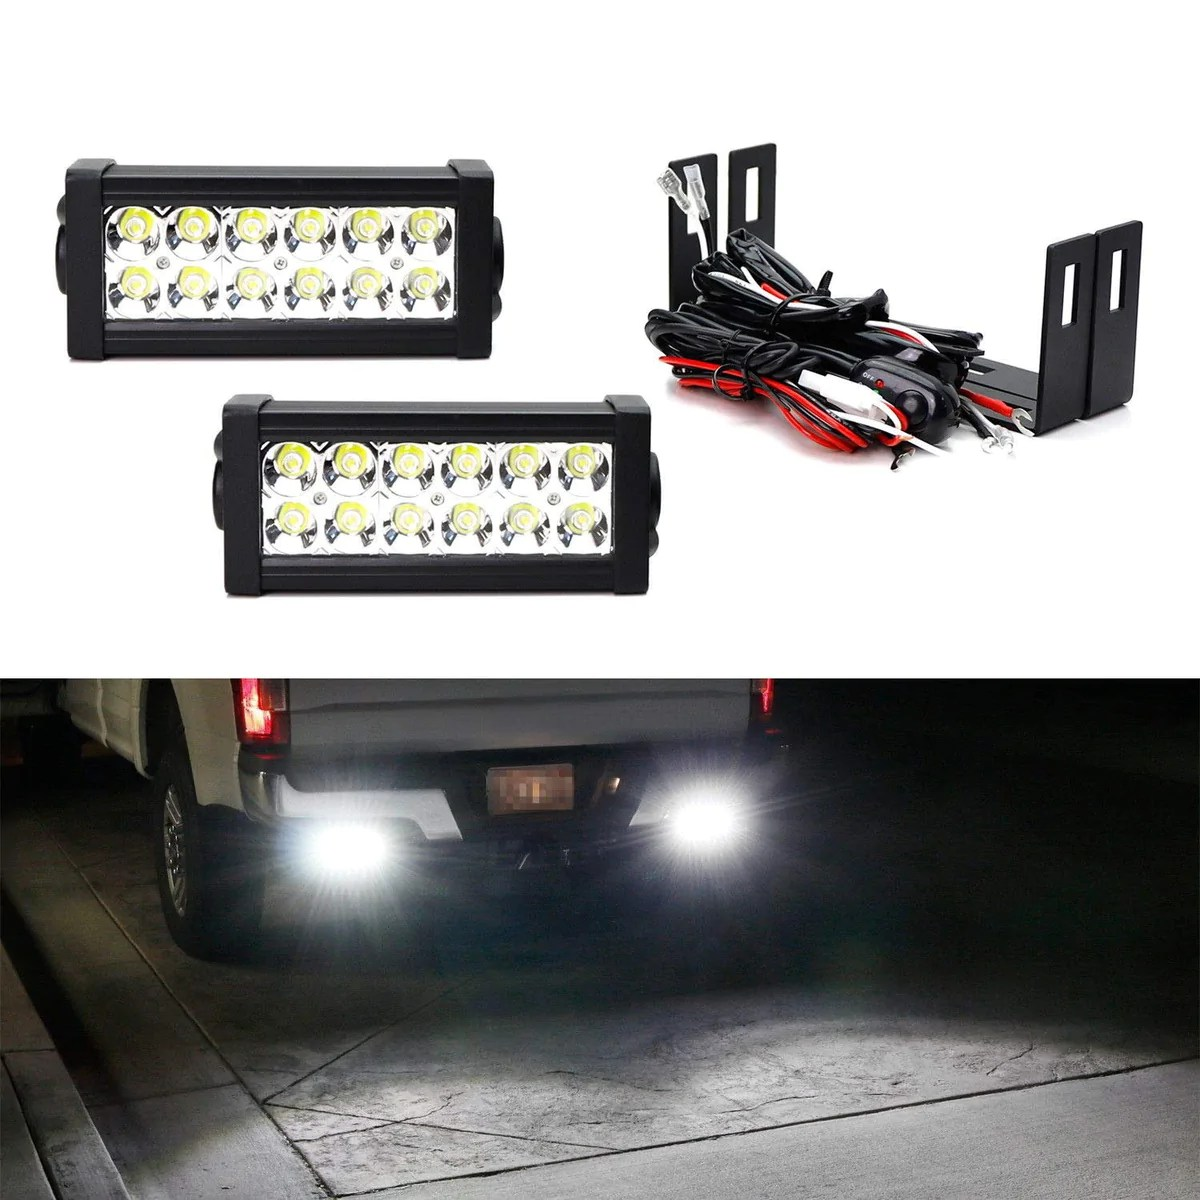 medium resolution of  led light bar kit for 2012 up toyota tacoma 2014 up tundra 2 36w high power led lightbars bumper frame mounting brackets on off switch wiring